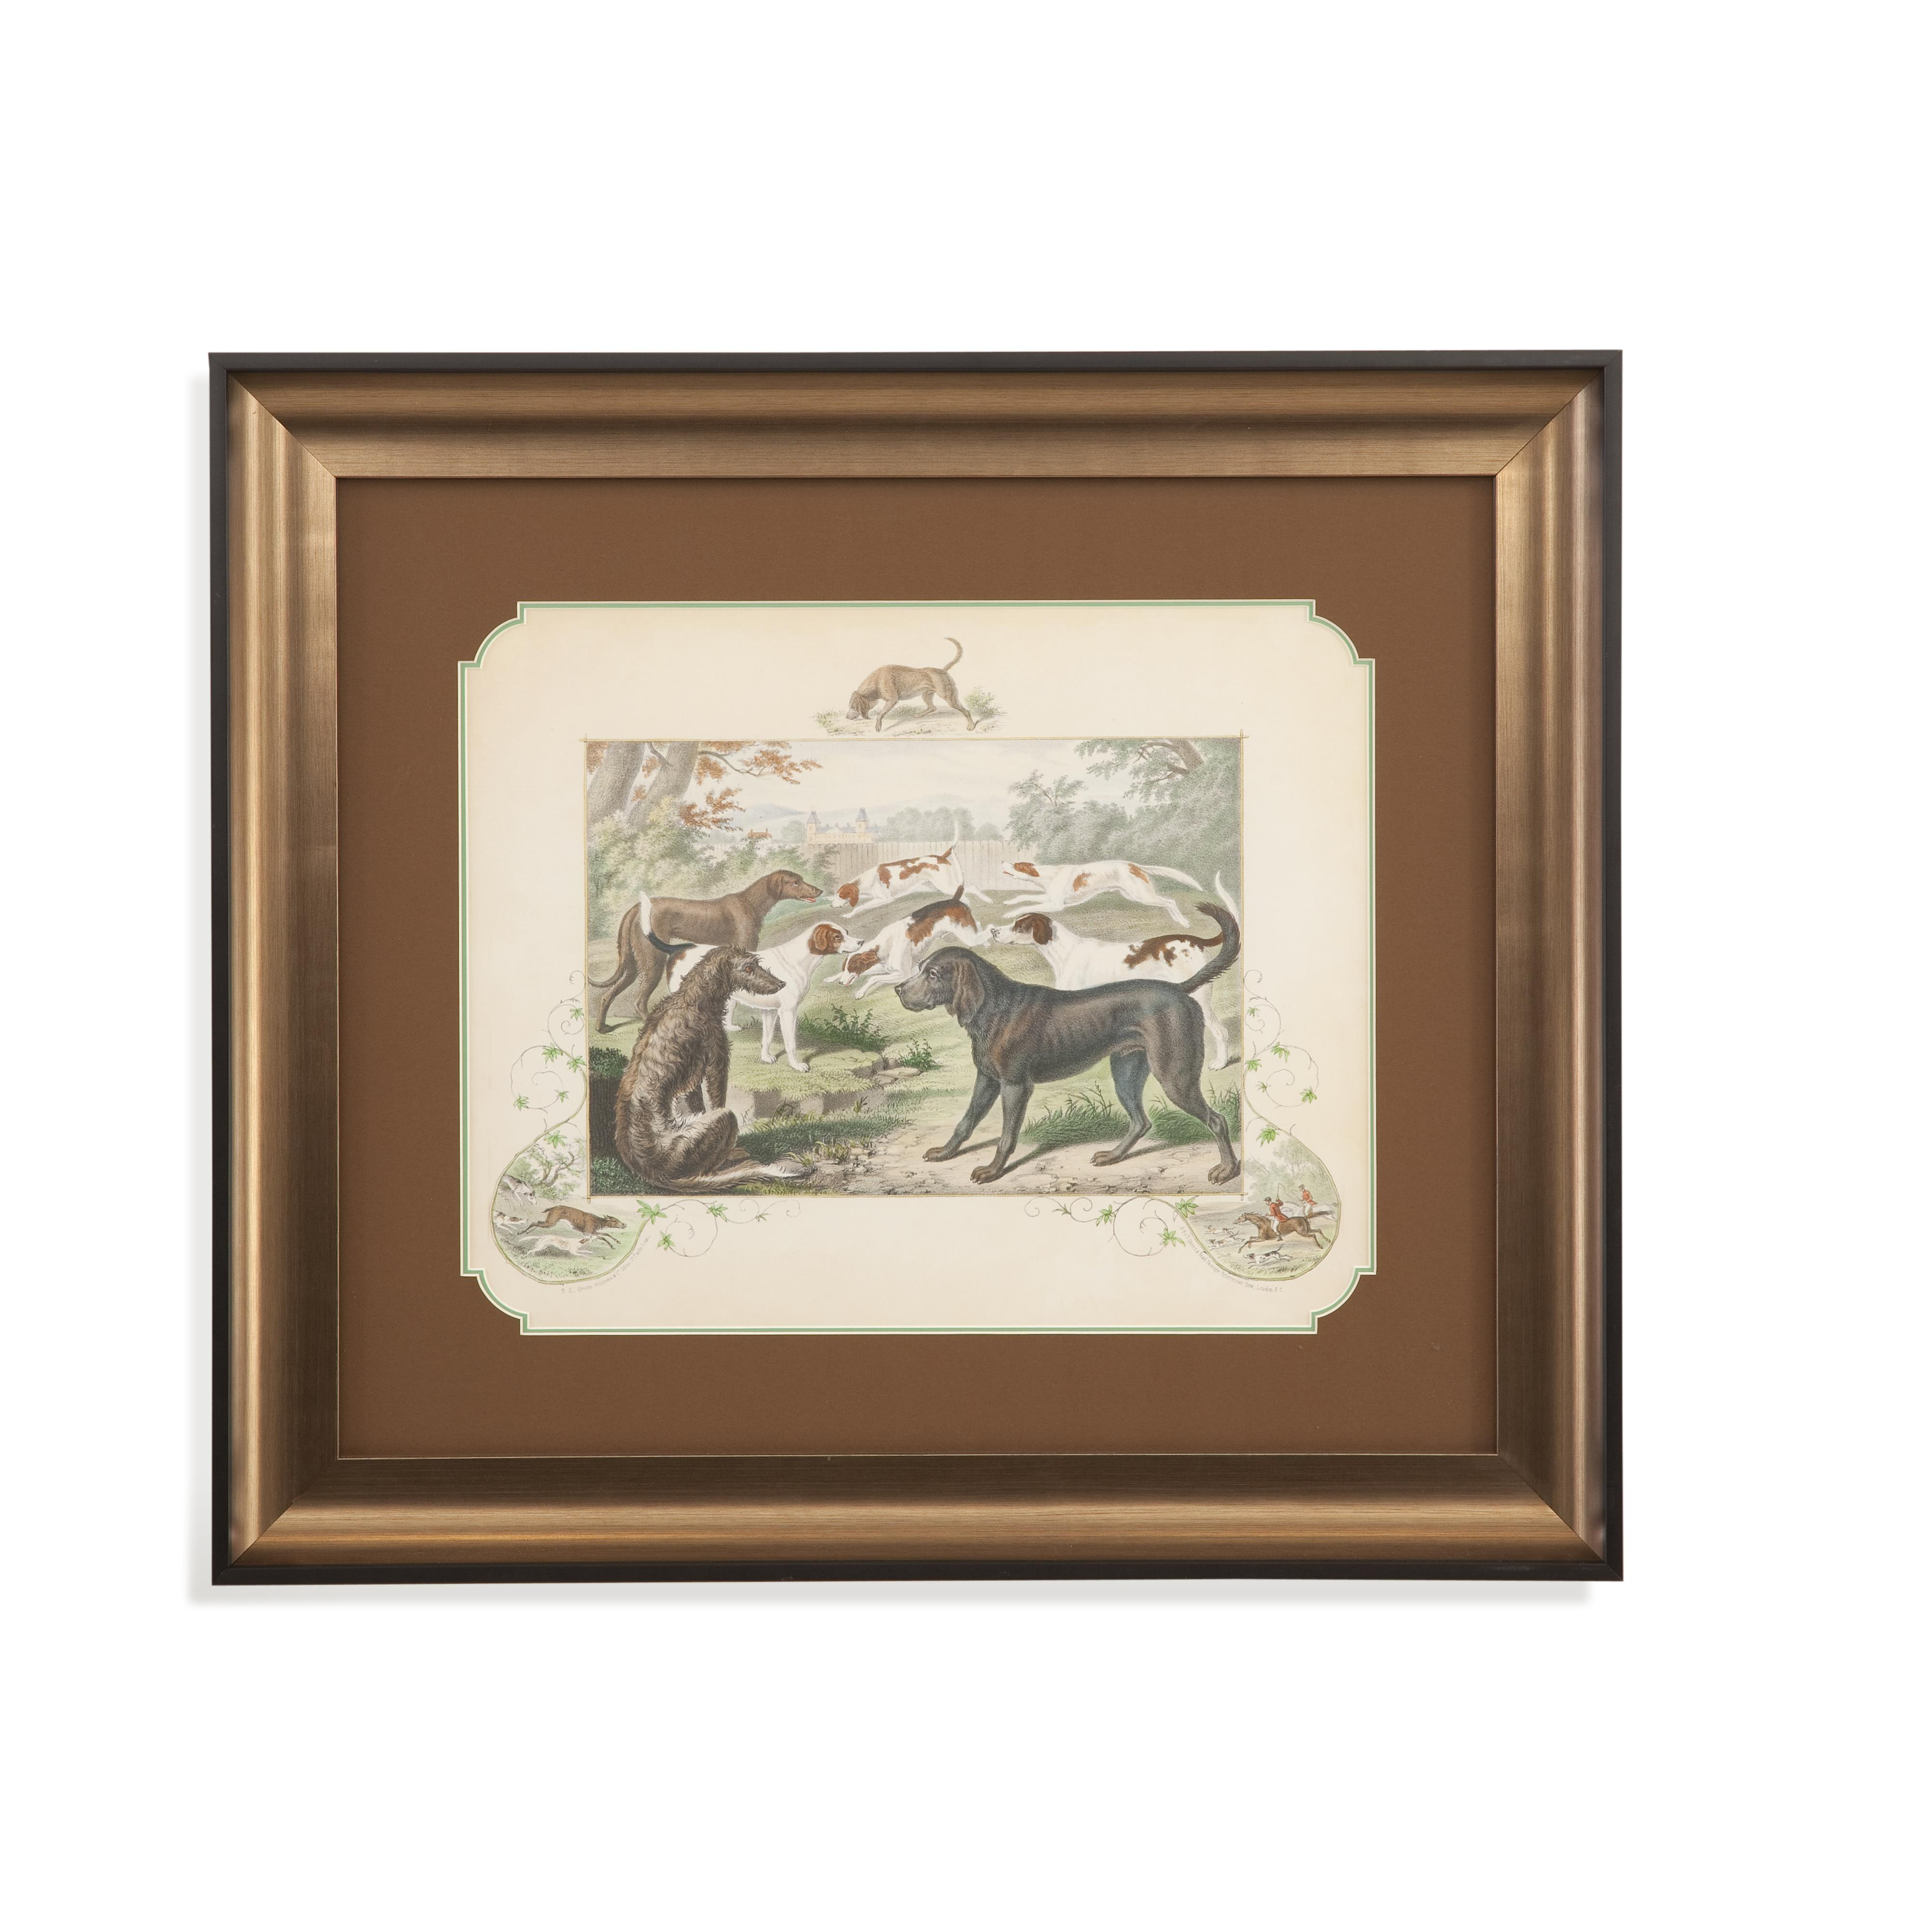 Home Accents A Group of Hounds by Bassett Mirror at Alison Craig Home Furnishings